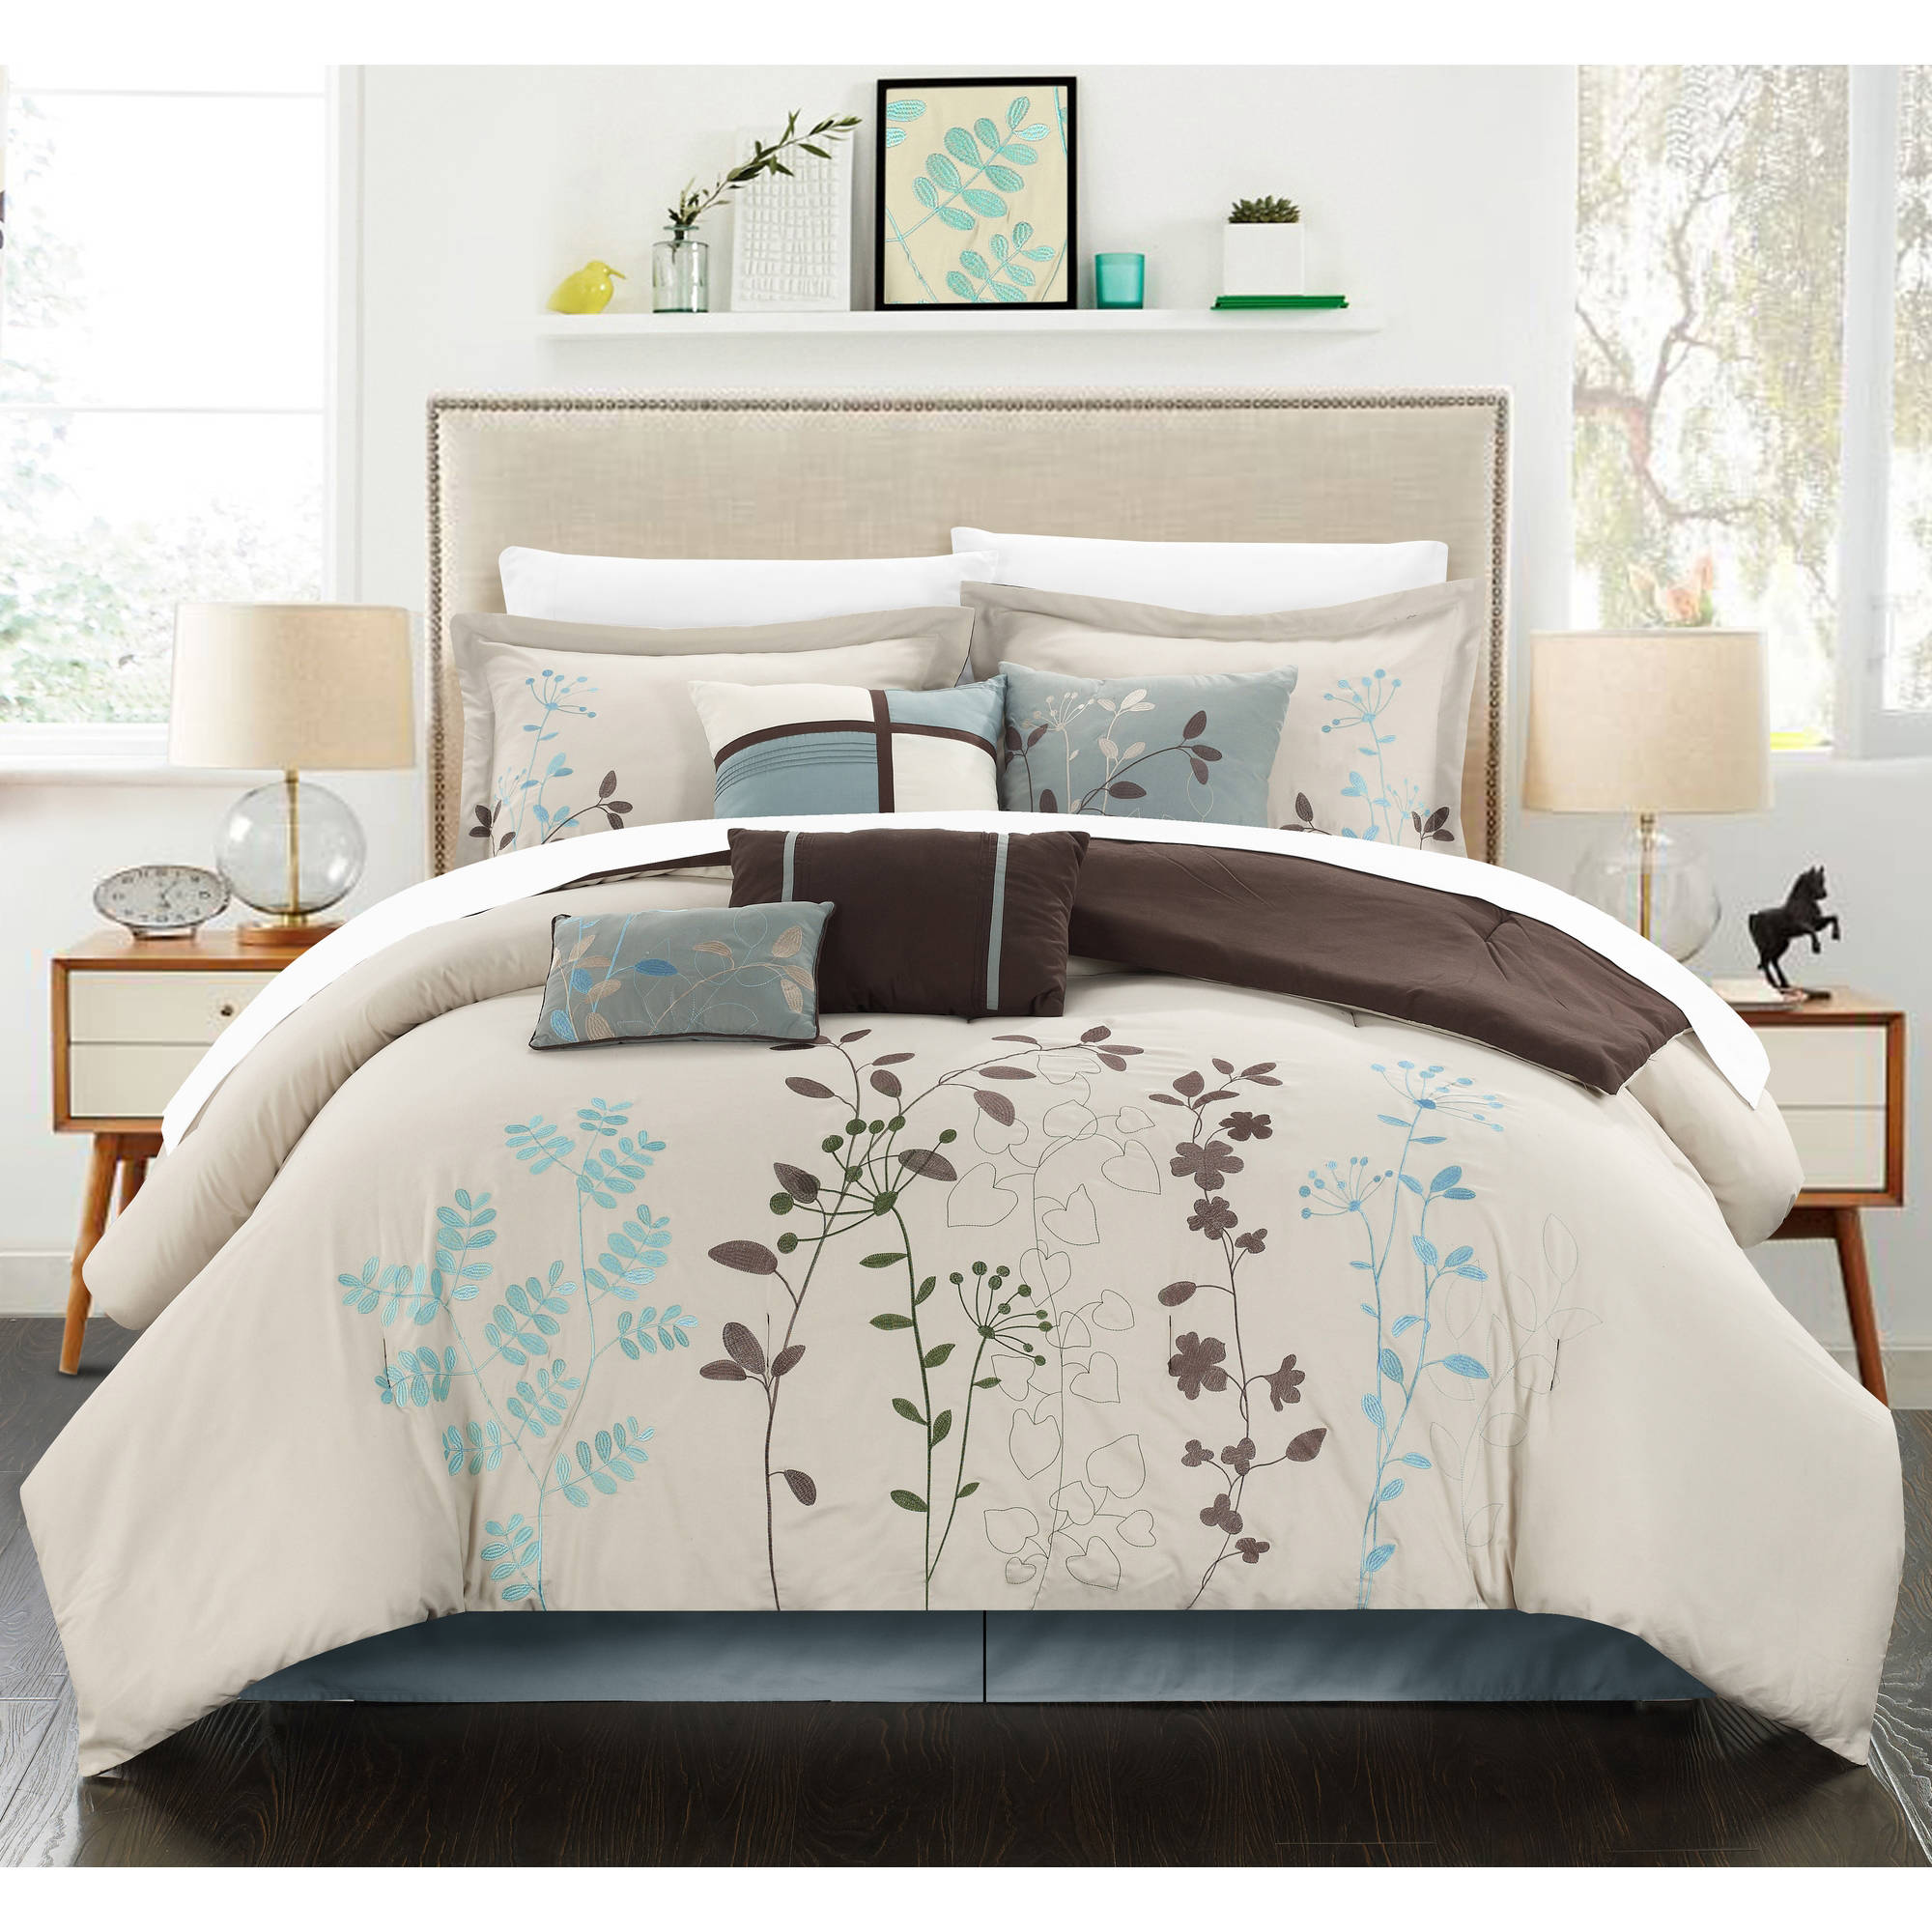 Fortuno 12-Piece Bed in a Bag Bedding Comforter Set